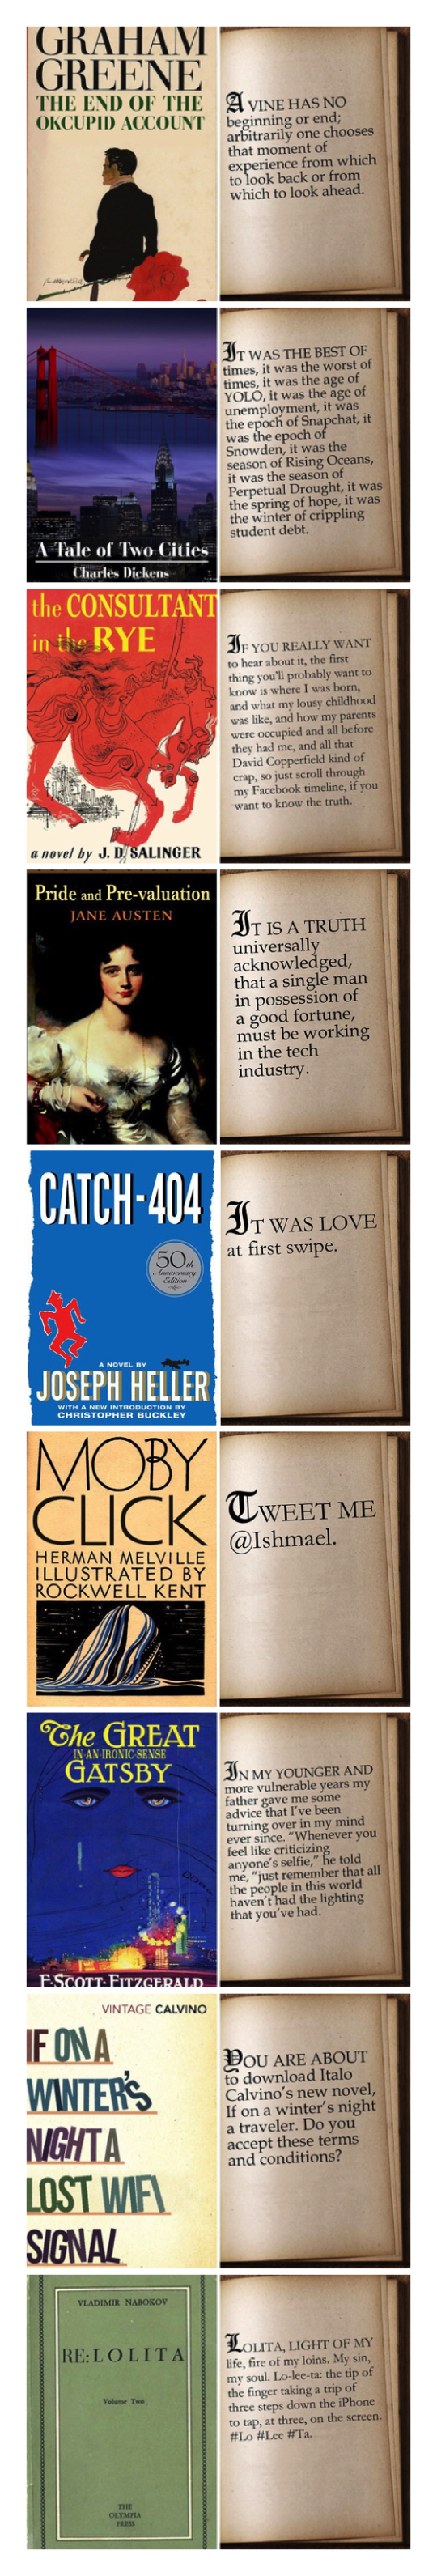 First lines from famous novels rewritten for 21st century